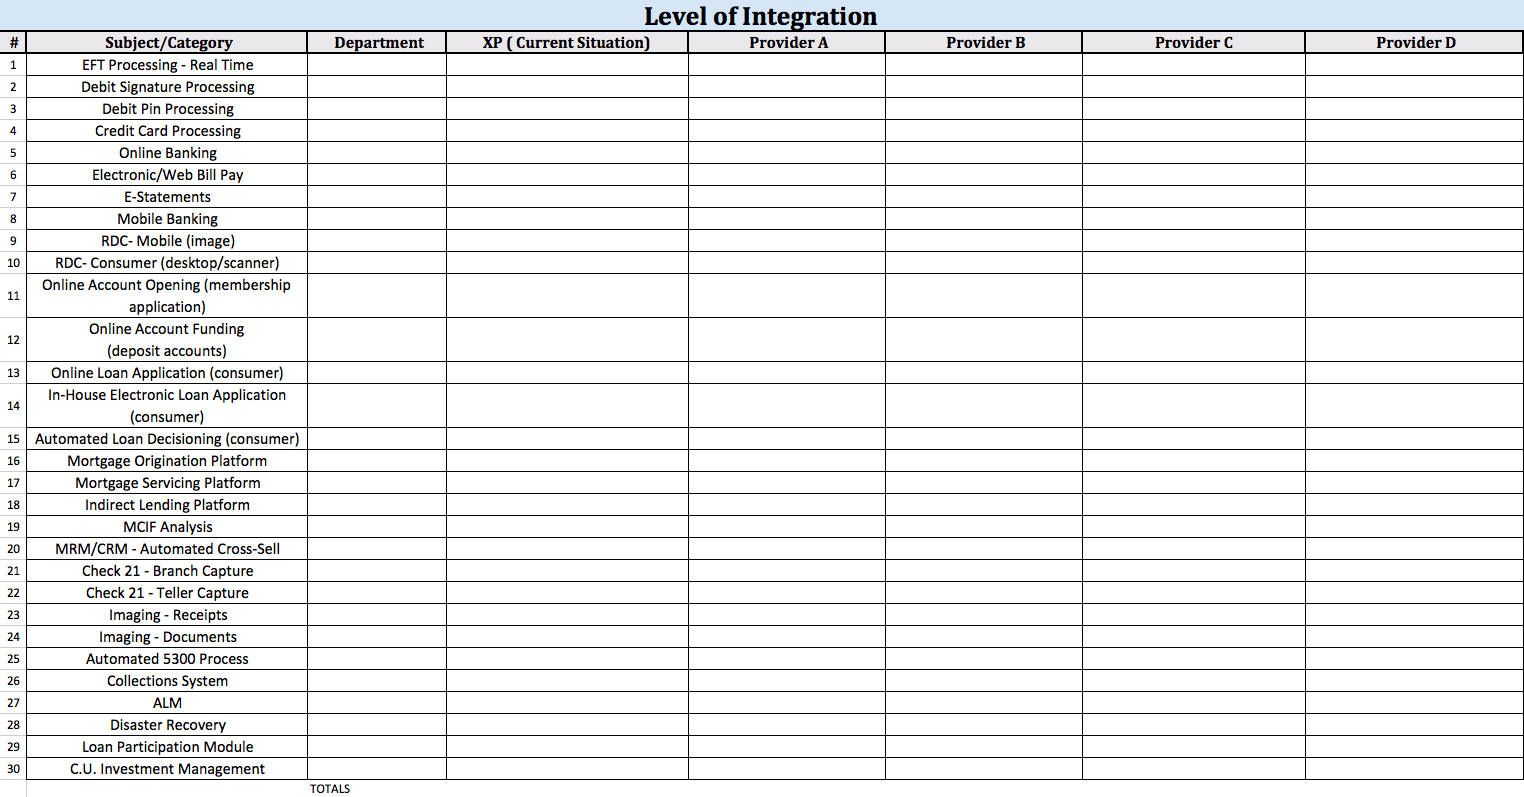 Level of Integration Chart